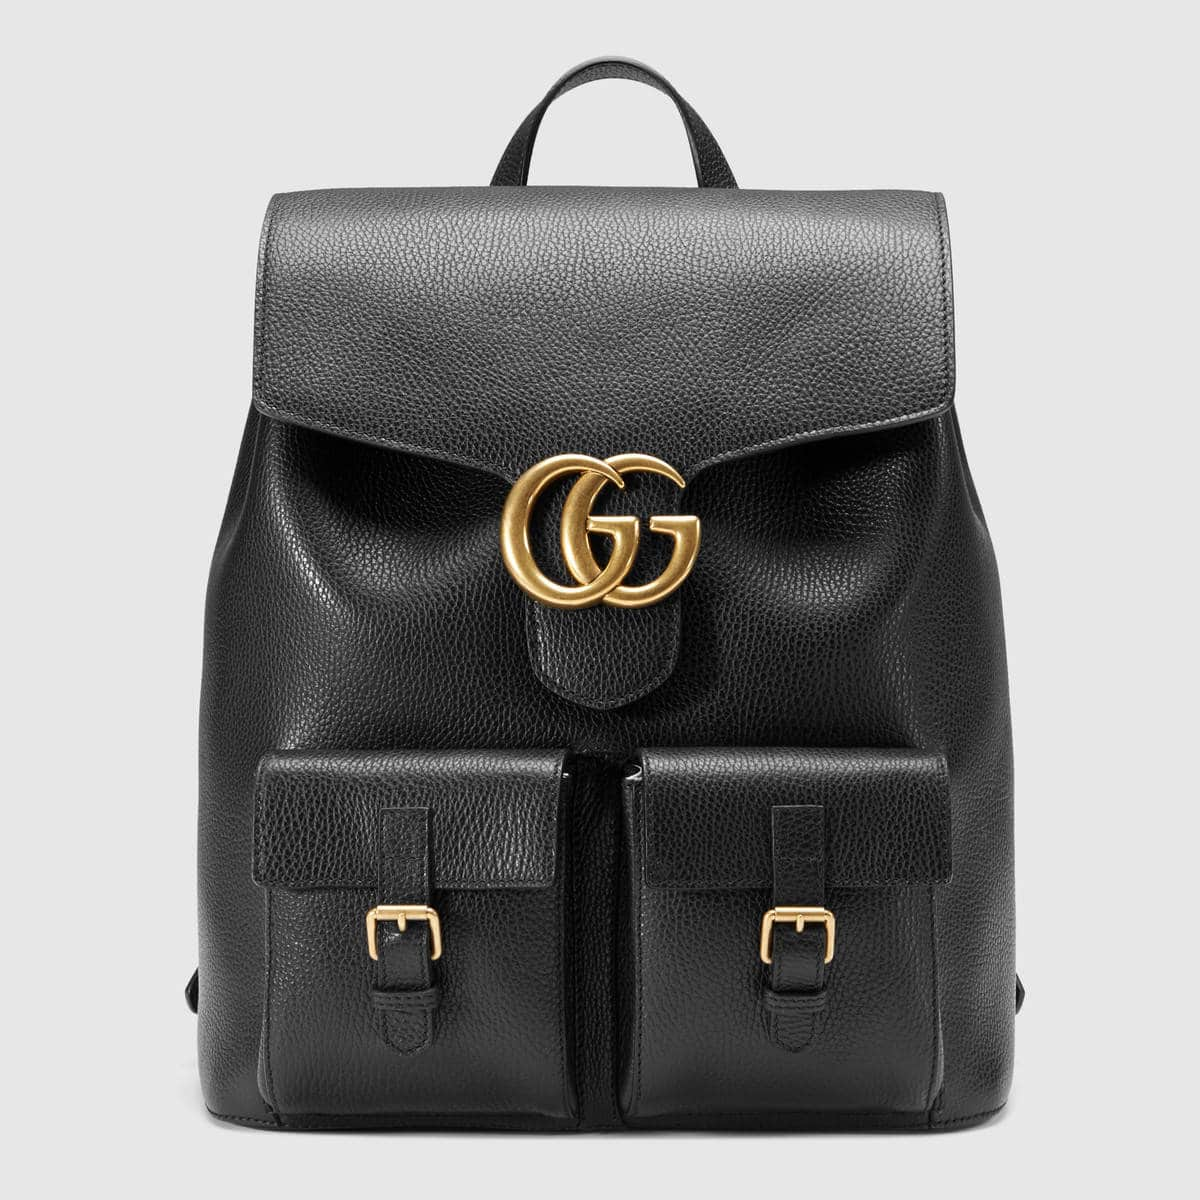 Gucci Gg Marmont Bag Reference Guide Spotted Fashion